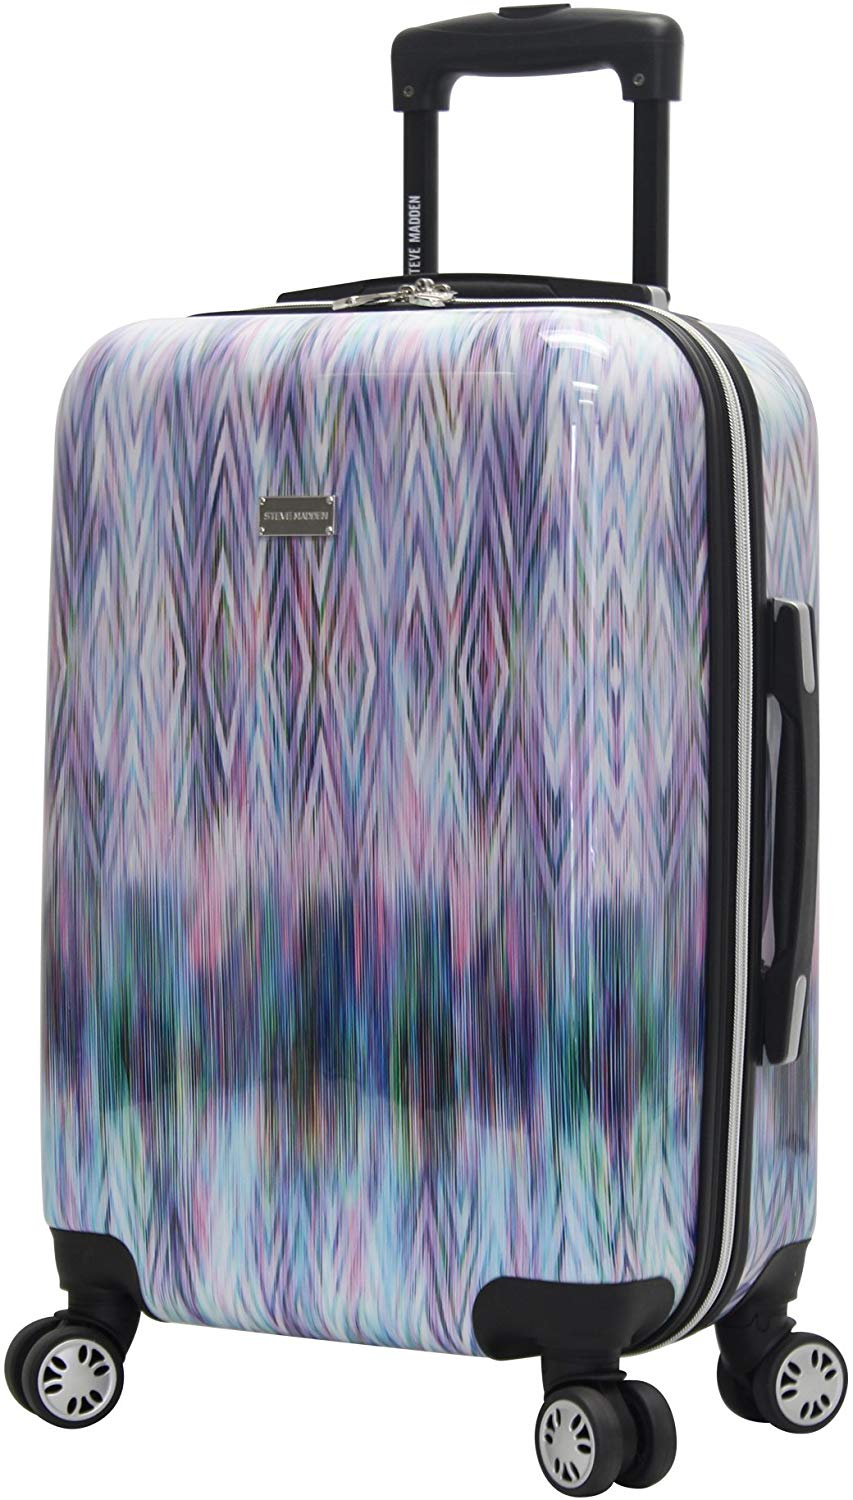 Steve Madden Carry-On Spinner Luggage, 20-Inch